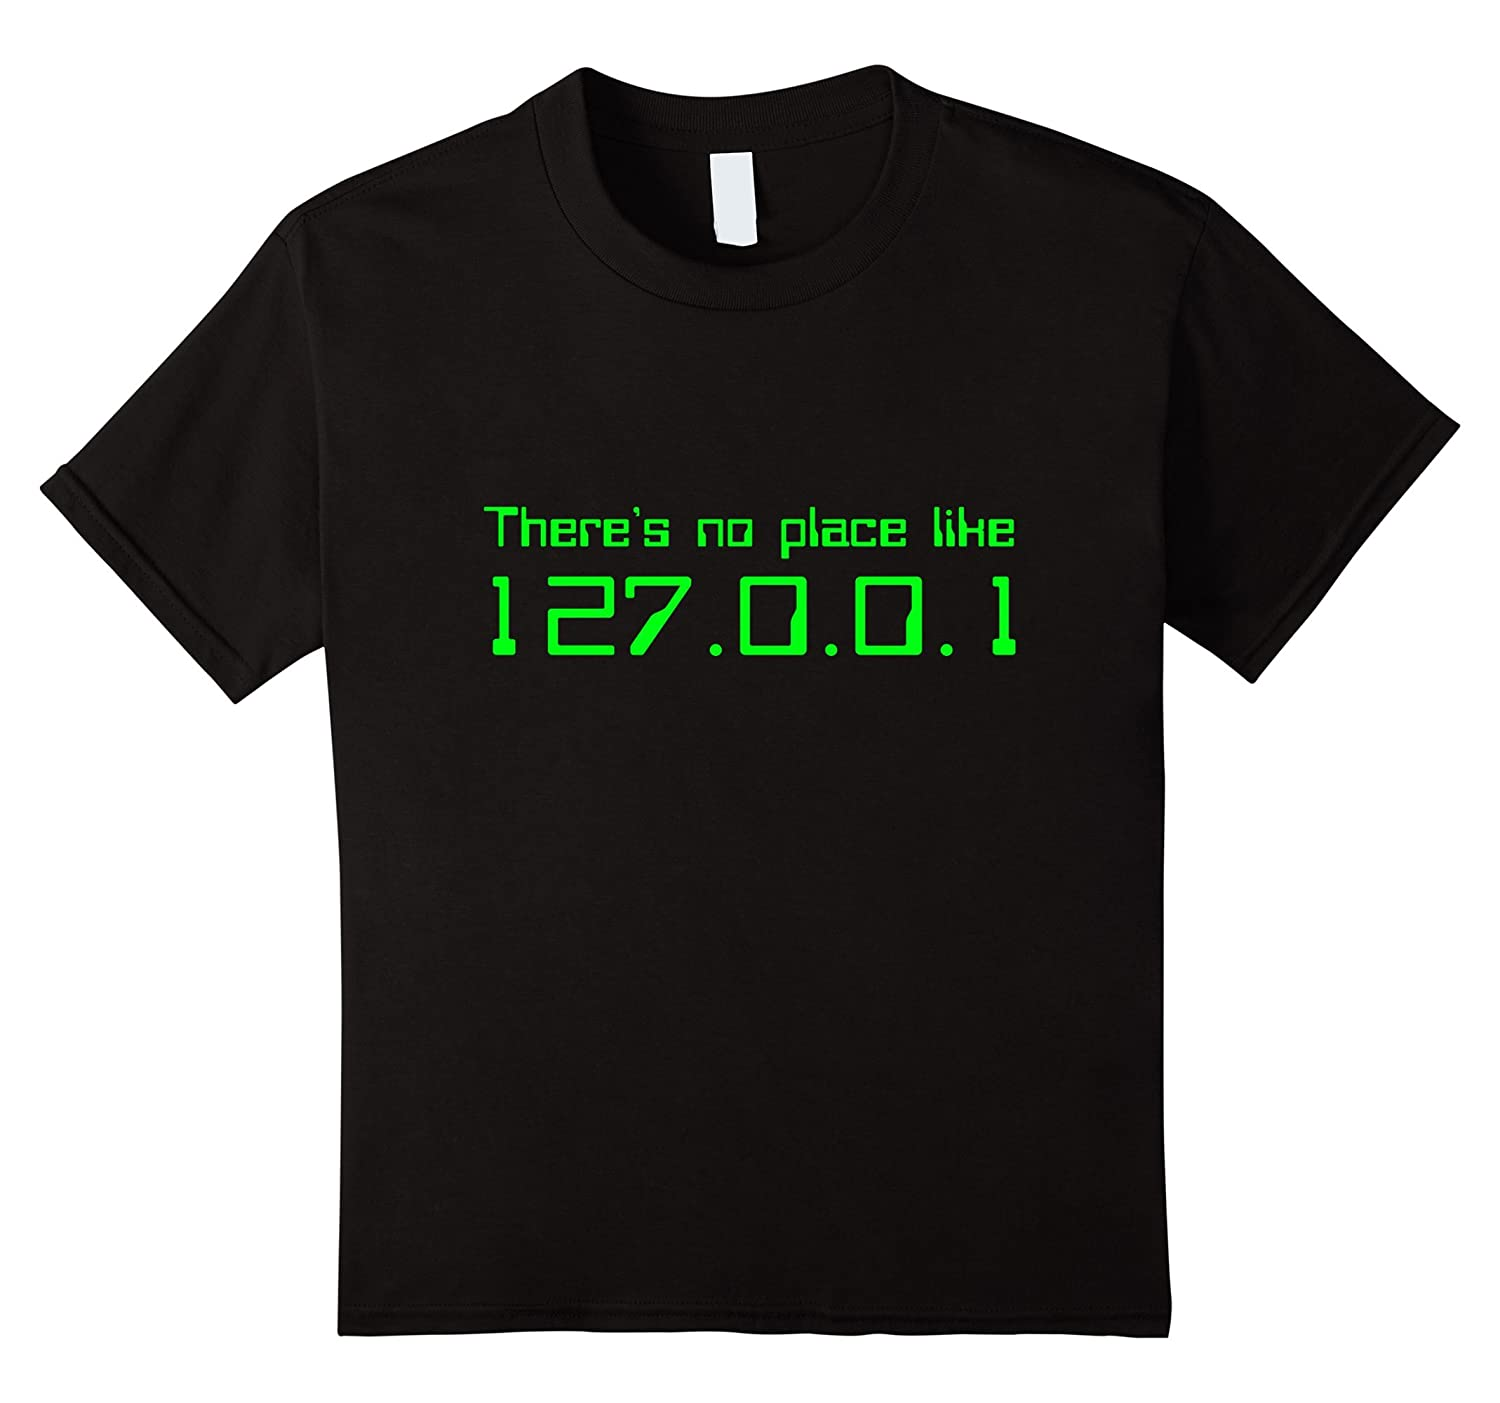 Theres place 127 0 0 1 Large Black-Tovacu